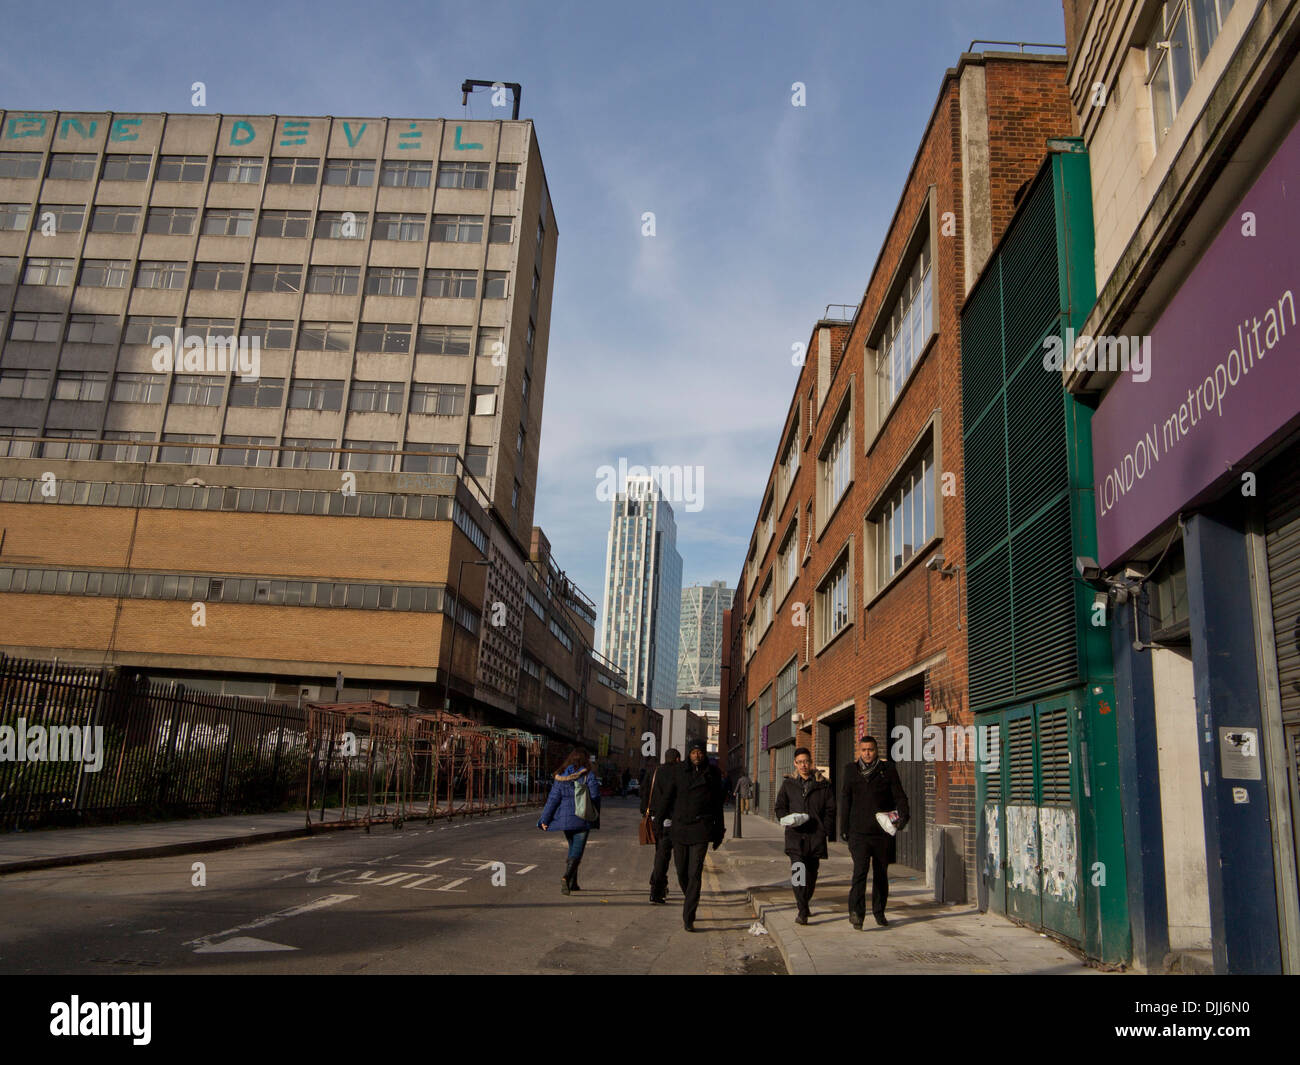 New construction work by old council housing in Aldsgate, London, UK - Stock Image